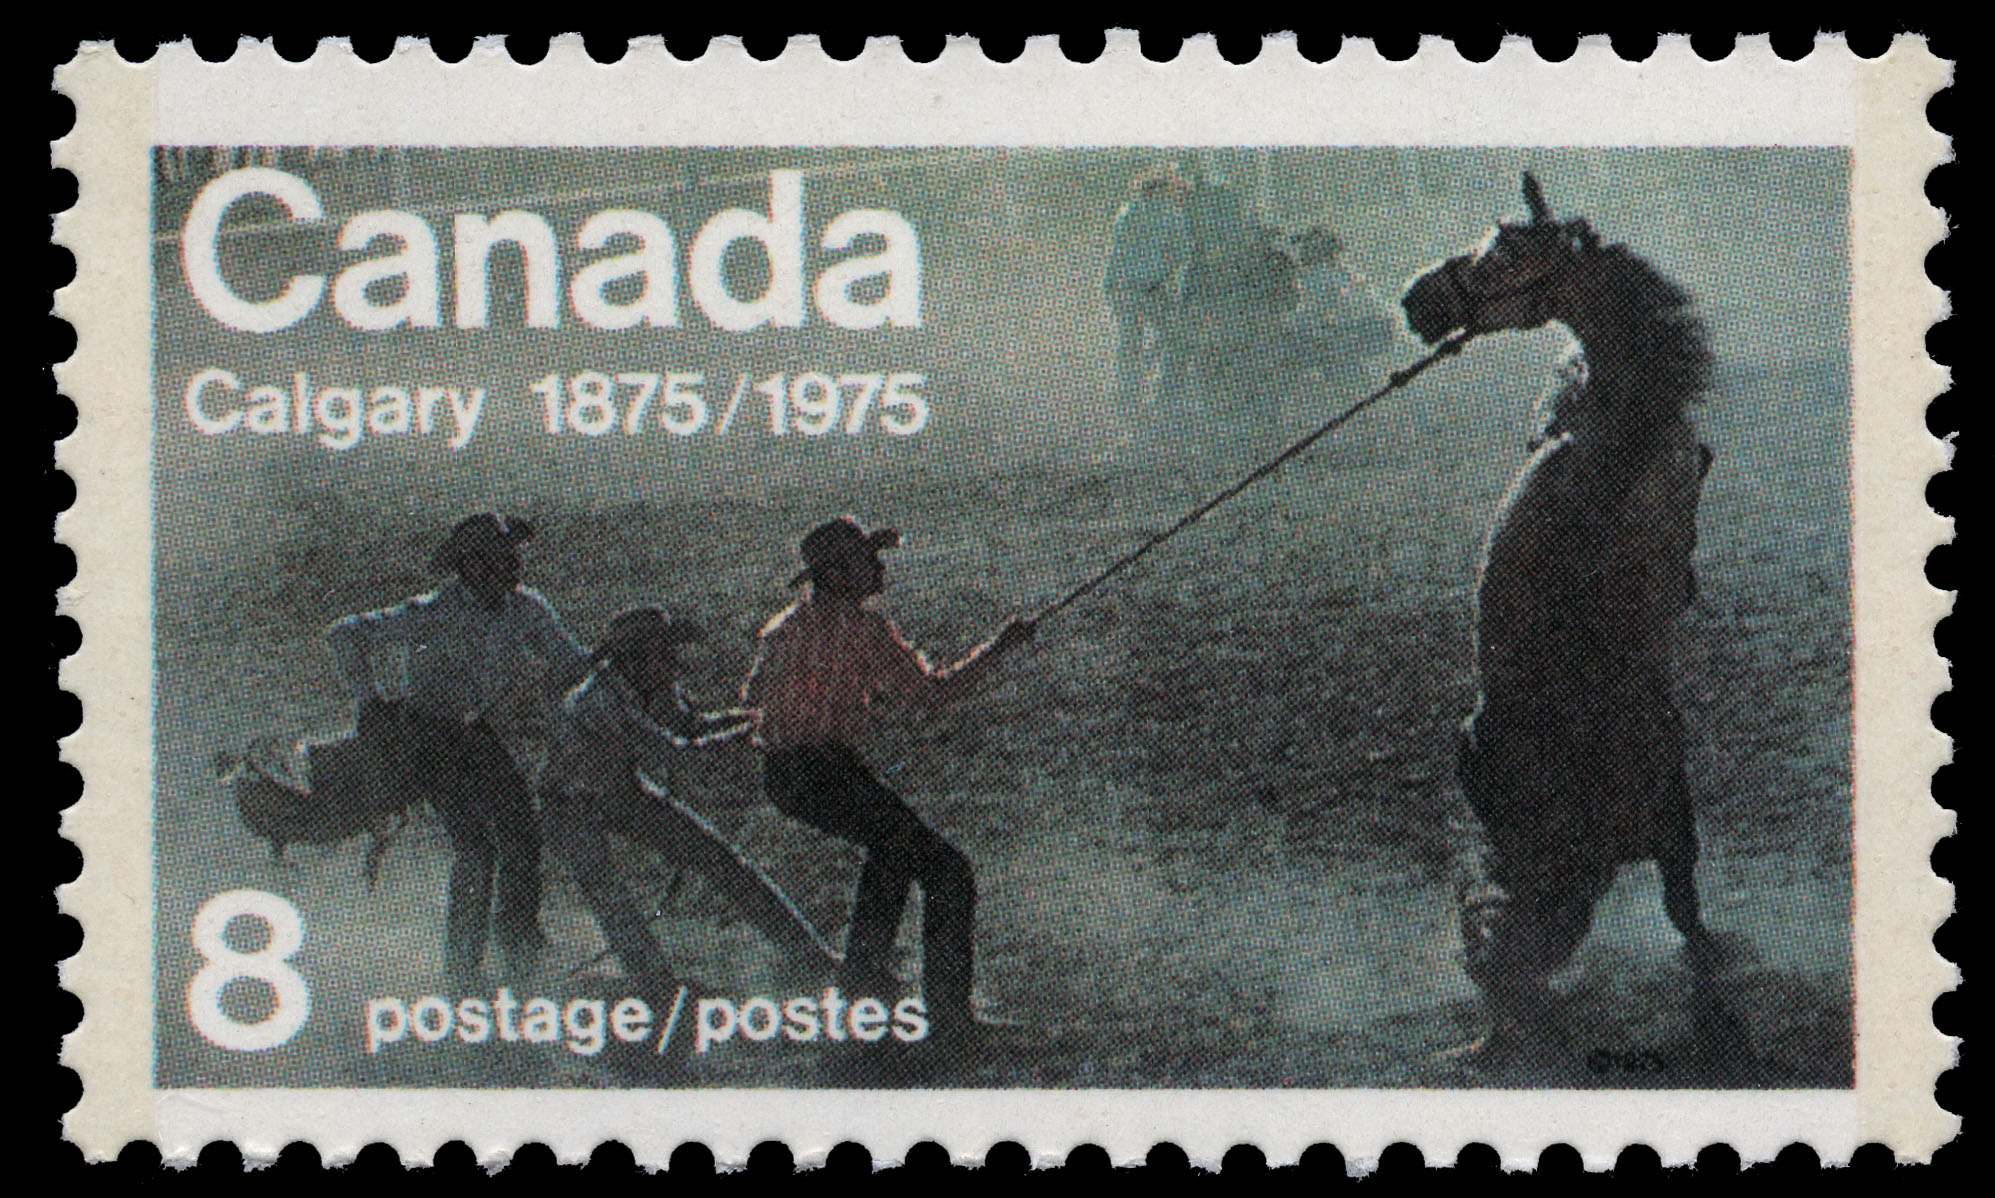 Calgary, 1875-1975 Canada Postage Stamp